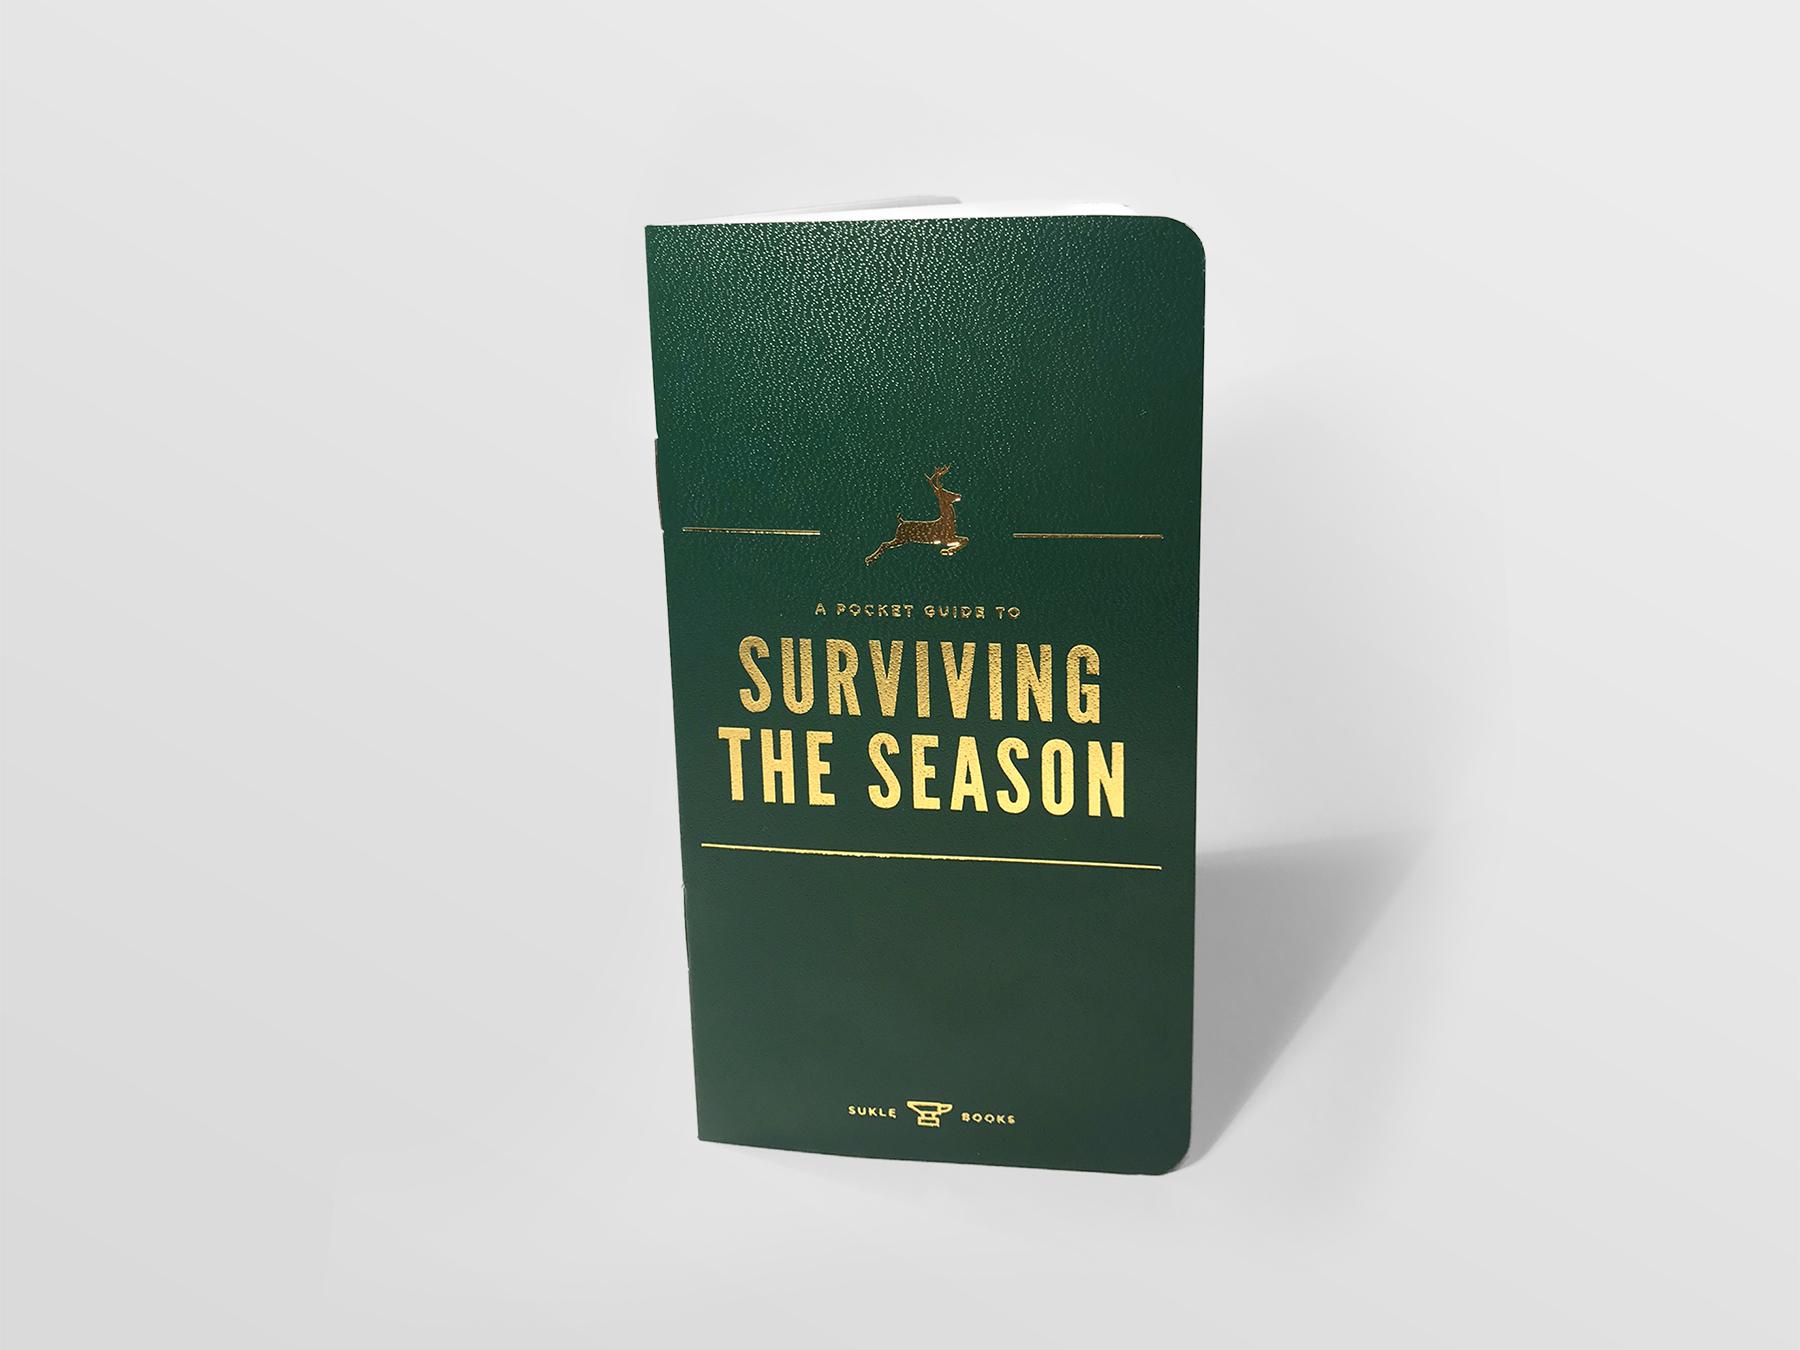 Survive the season with our holiday card